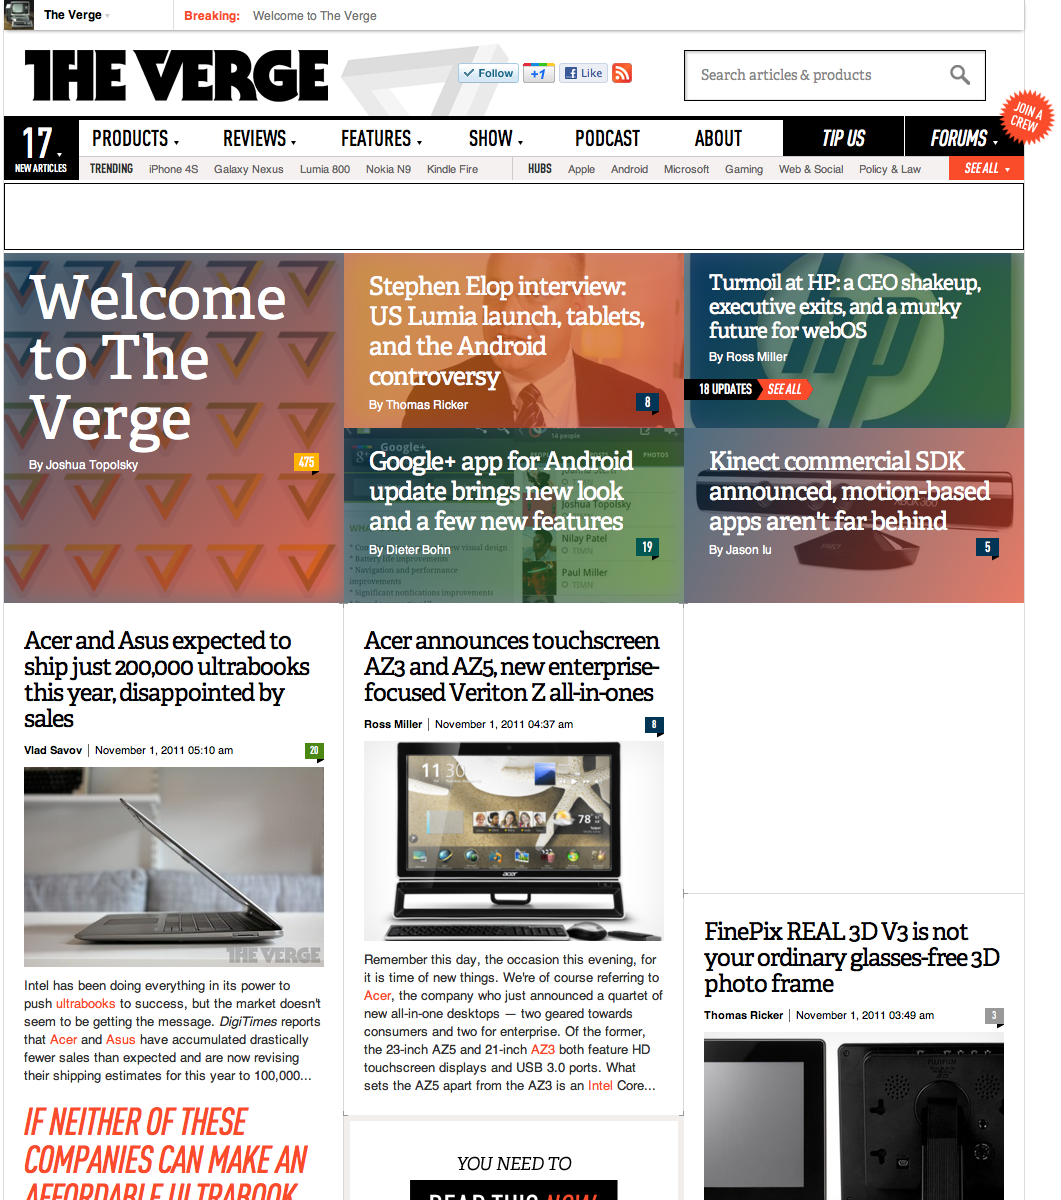 theverge.com when launched